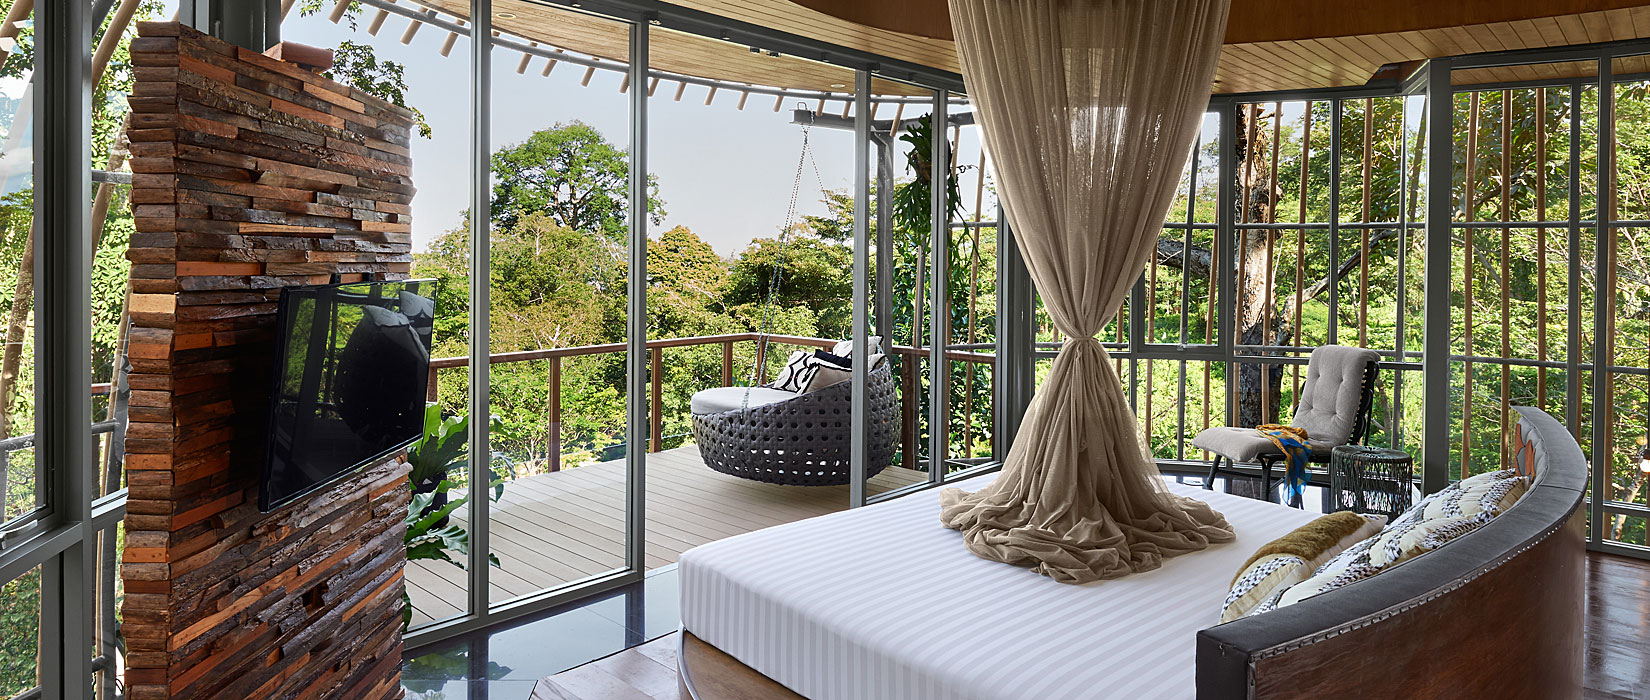 BEDROOM WITH A VIEW - Keemala Hotel Phuket